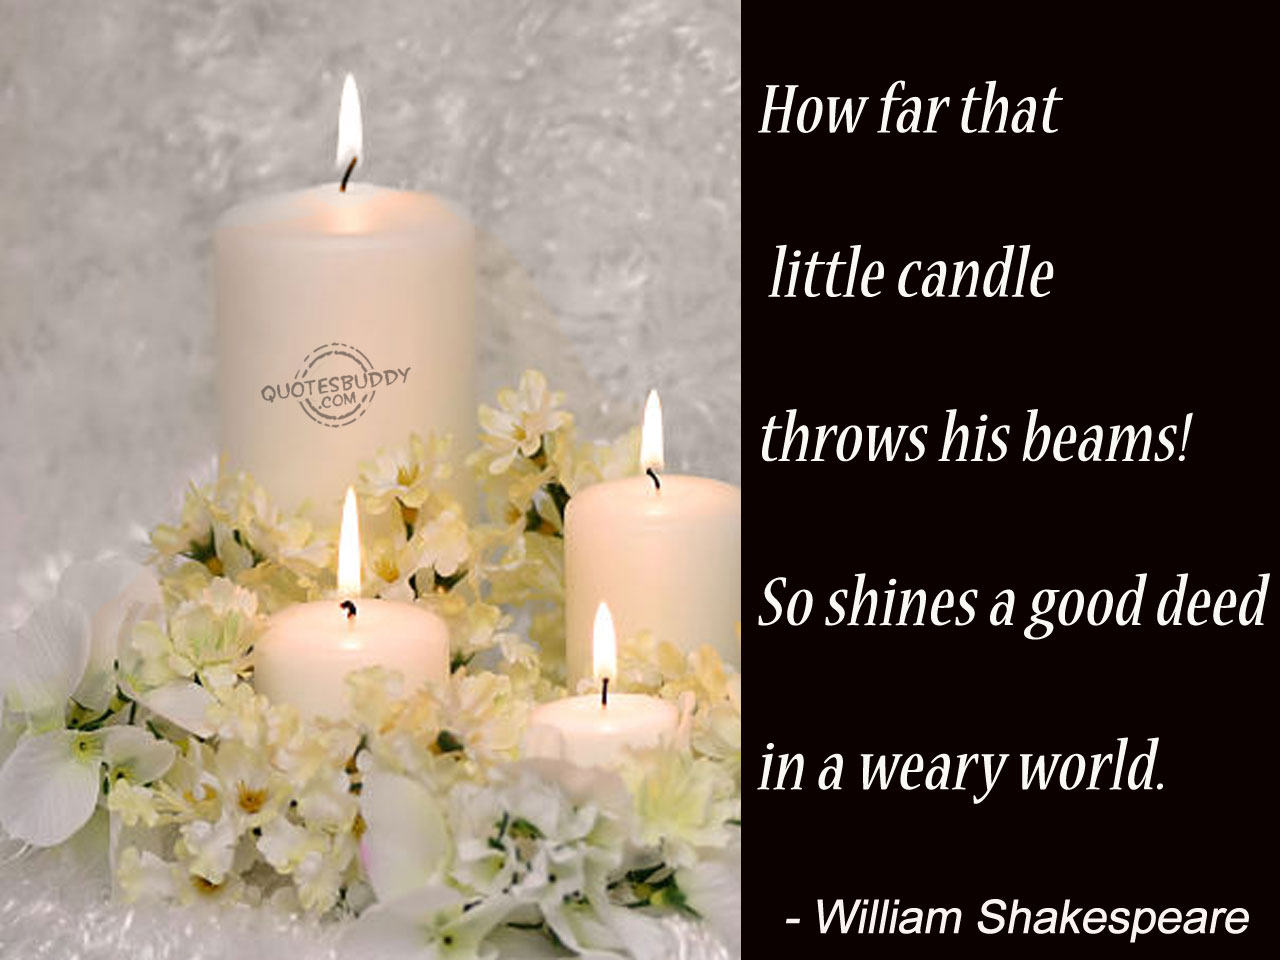 How Far That Little Candle Throws His Beams! So Shines a Good Deed In a Weary World